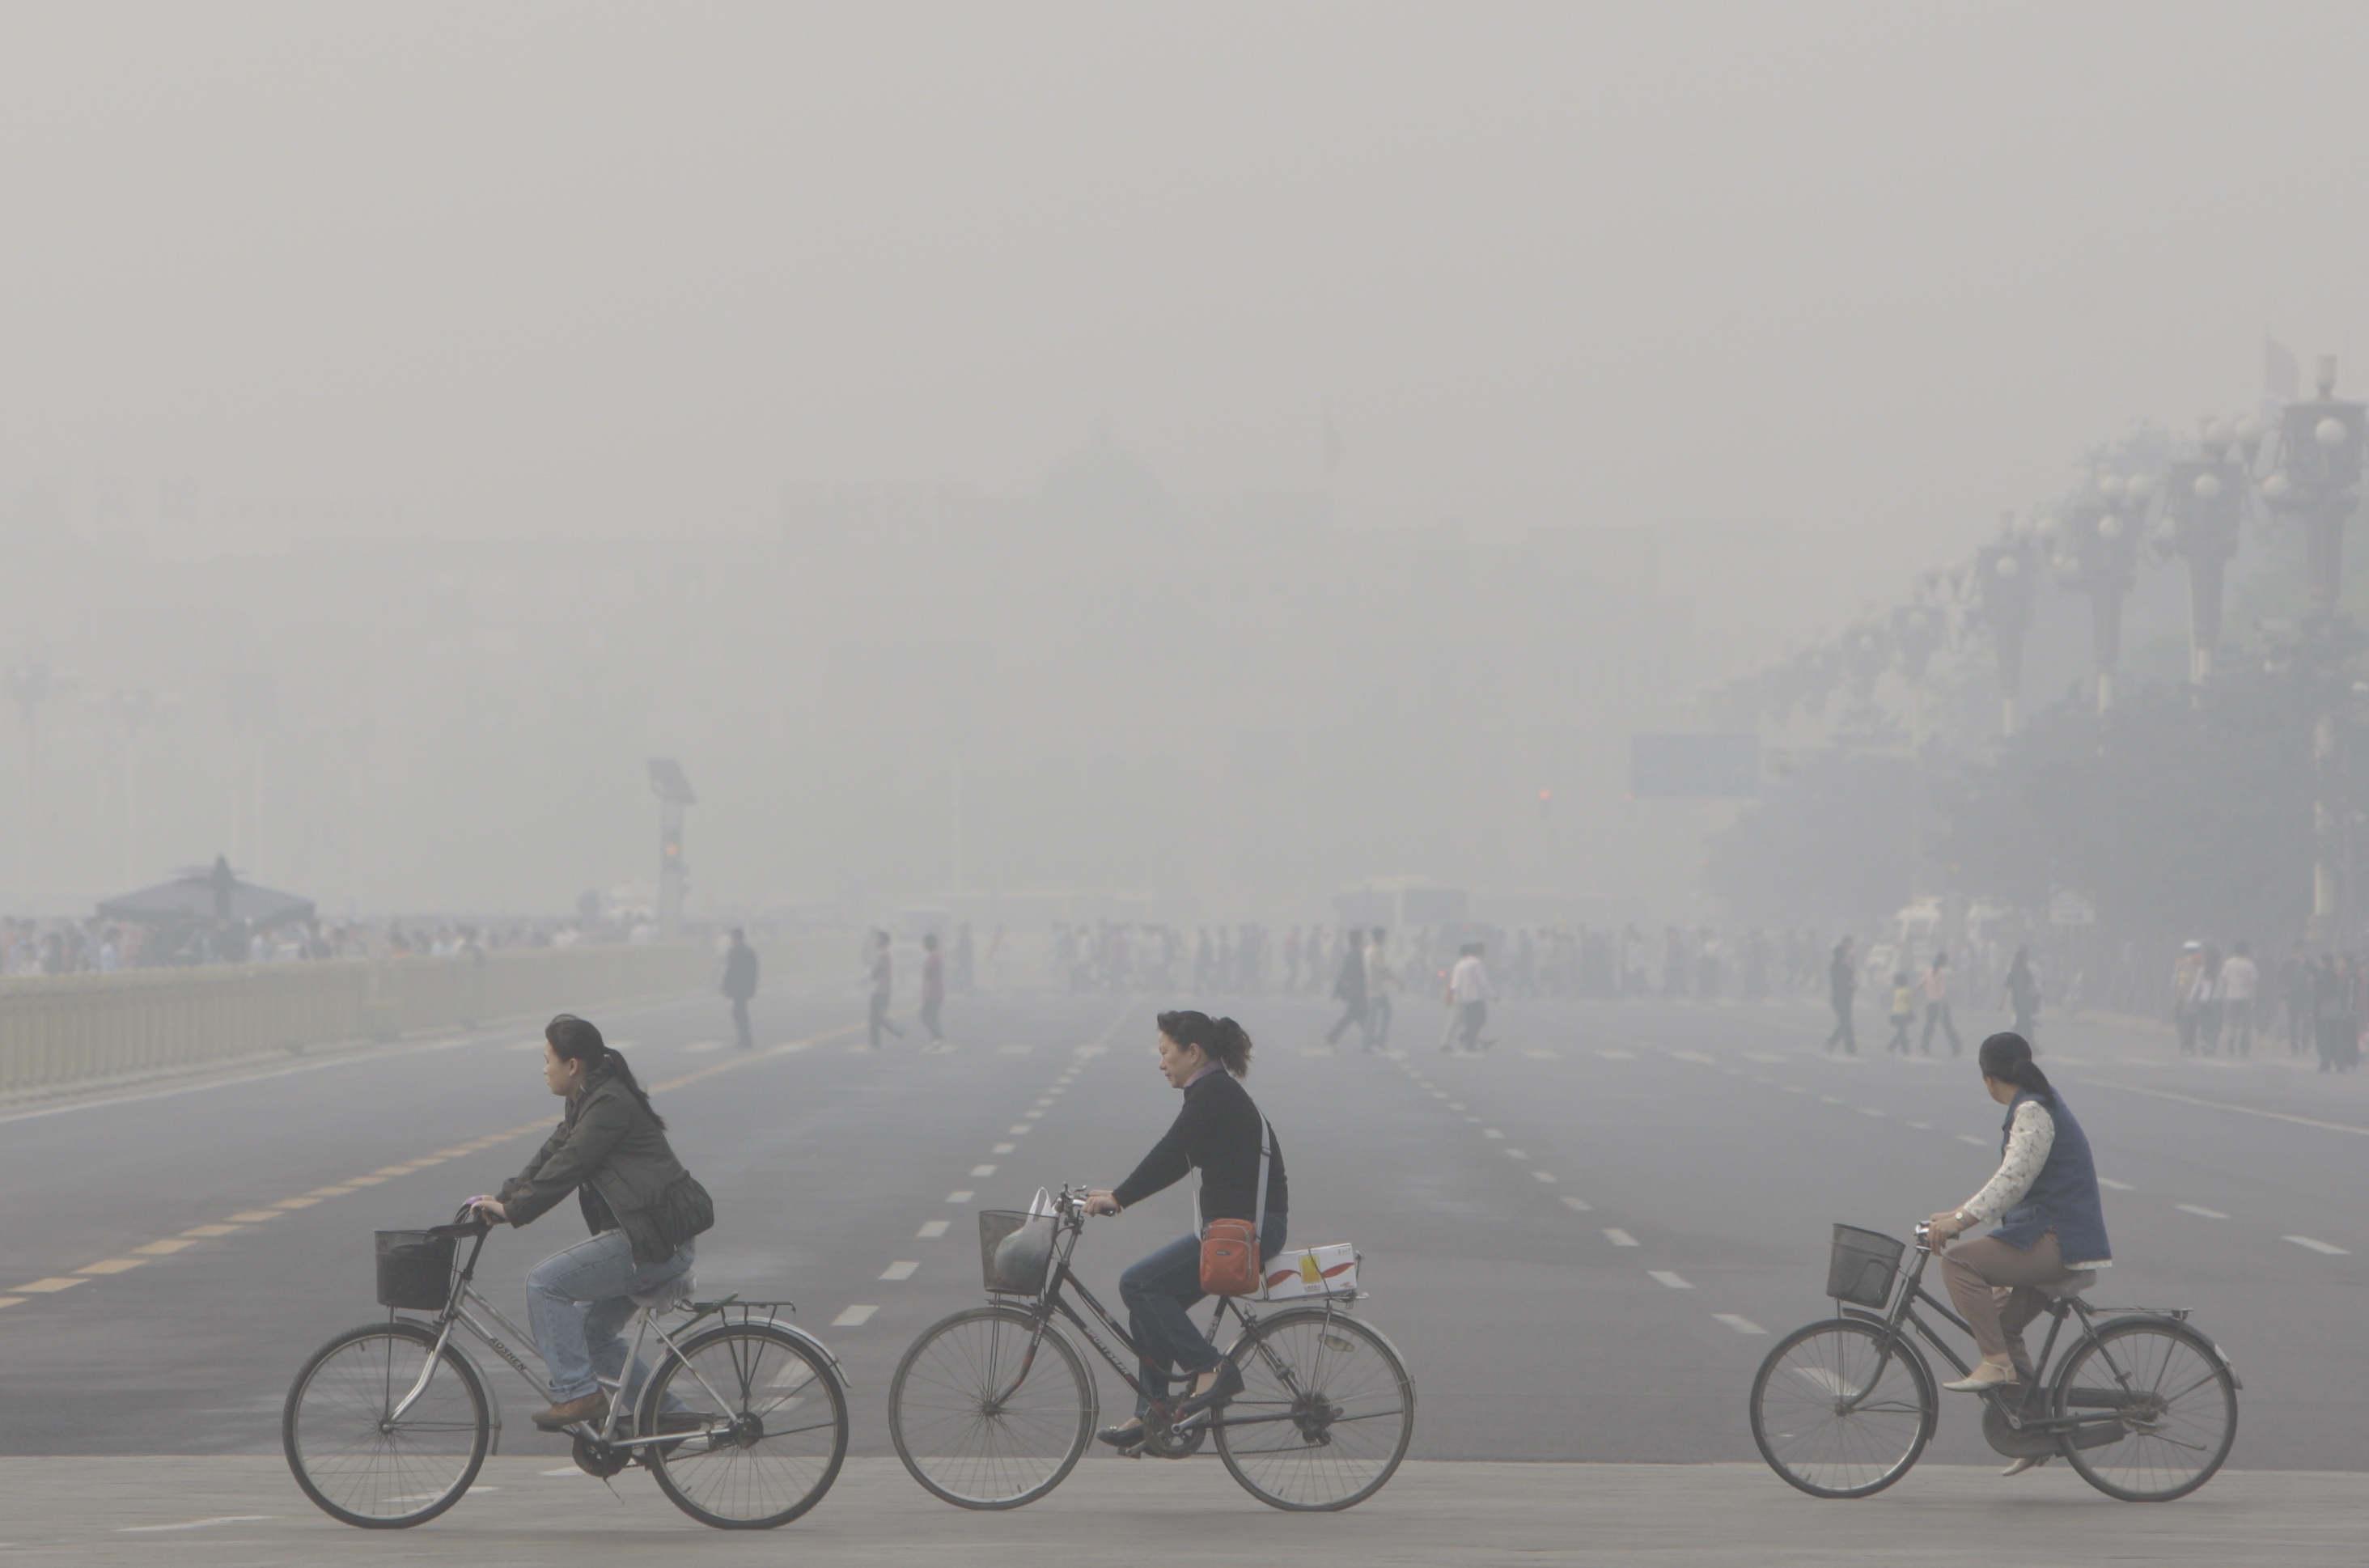 **FILE**This May 1, 2008 file photo shows Chinese women cycling through smog and pollution over Beijing's Tiananmen Square. A thick brown cloud of soot, particles and chemicals stretching from the Persian Gulf to Asia threatens health and food supplies in the world, according to a report commissioned by the U.N. Environment Program released Thursday, Nov. 13, 2008. (AP Photo/Oded Balilty, File)